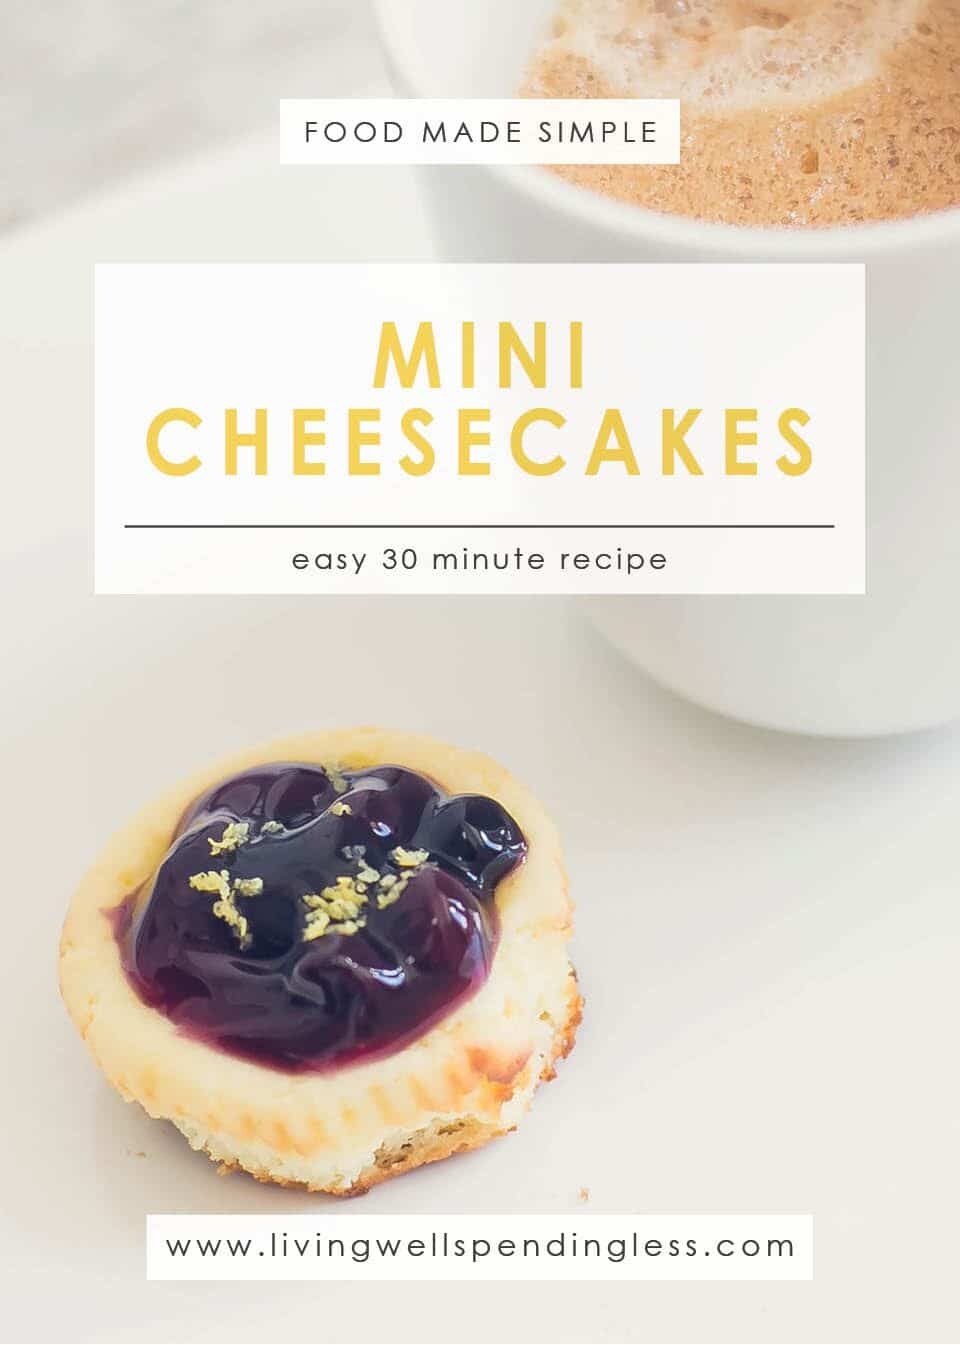 Mini Cheesecakes | Dessert for Two | Food Made Simple | Easy Mini Cheesecakes Recipe